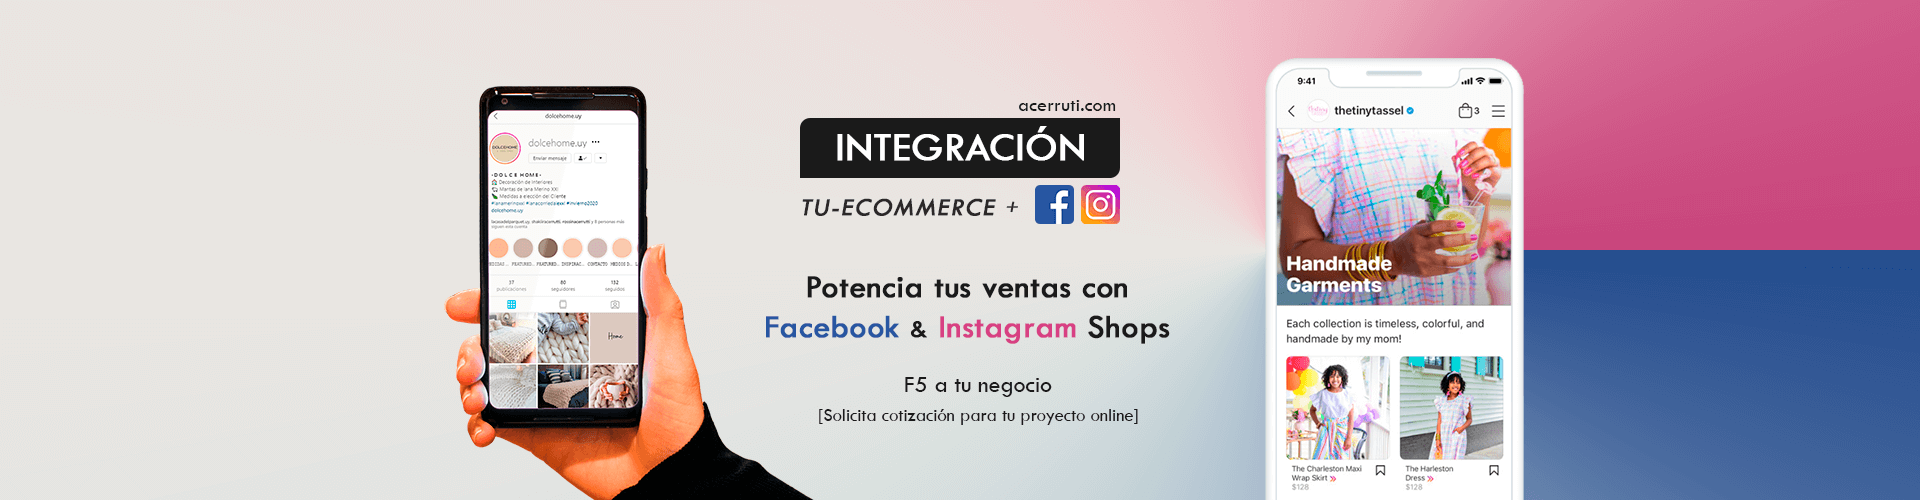 integracion-ecommerce-facebook-instagram-shop-acerruti